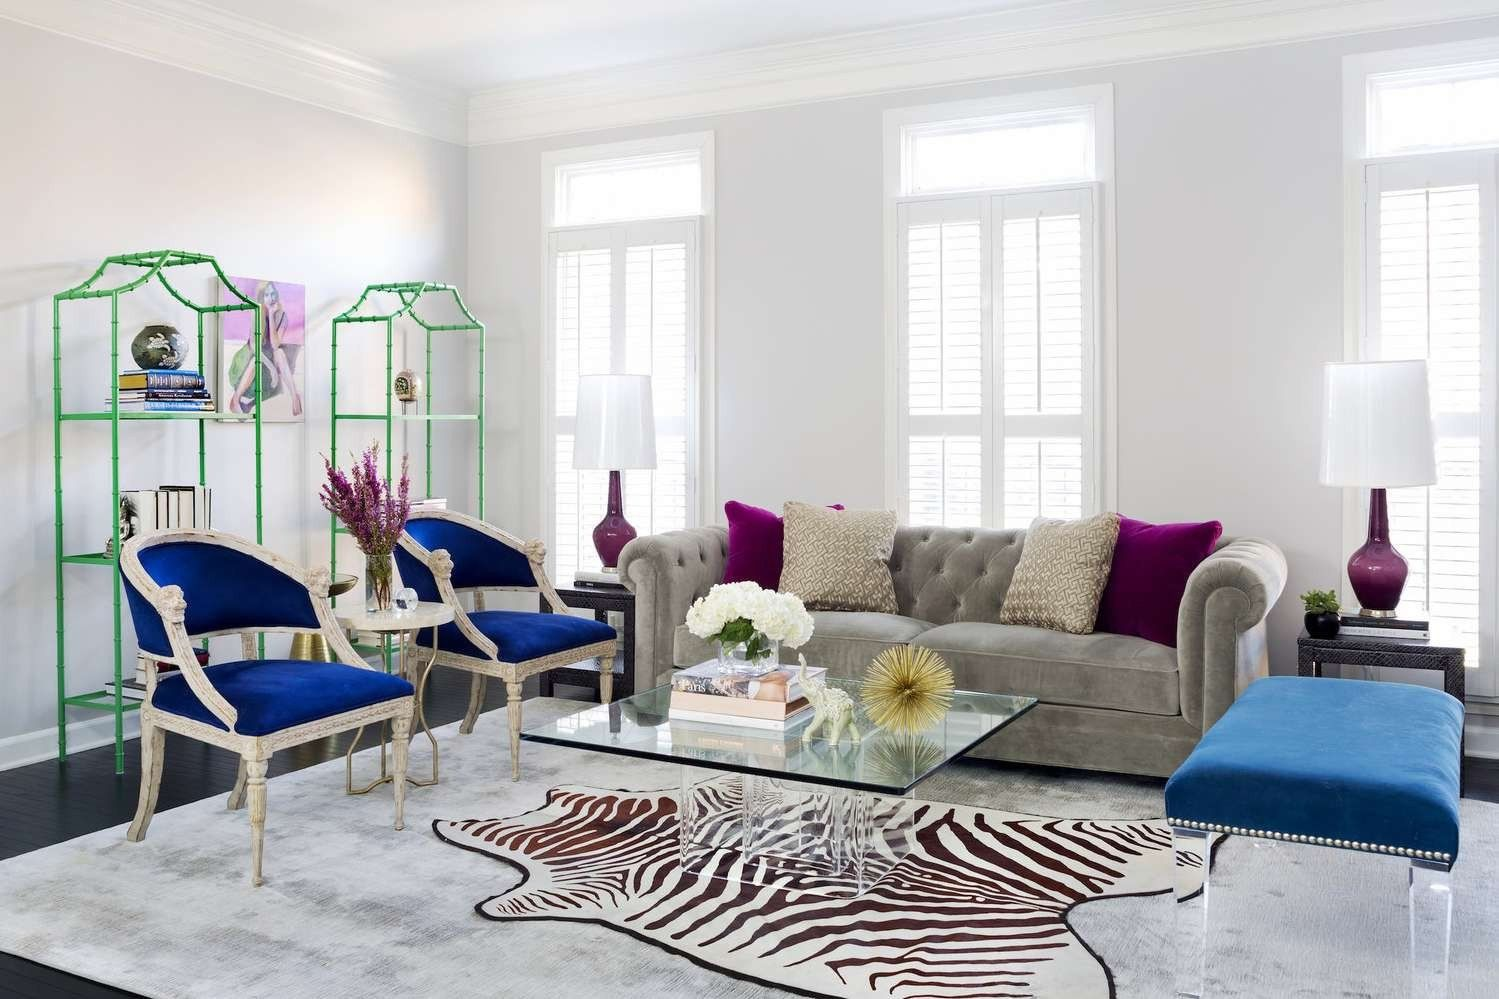 Purple Living Room Accessories Awesome 19 Soothing Cool Color Schemes For Decorating Your Home In 2020 Purple Living Room Living Room Decor Gray Living Room Grey #soothing #living #room #colors